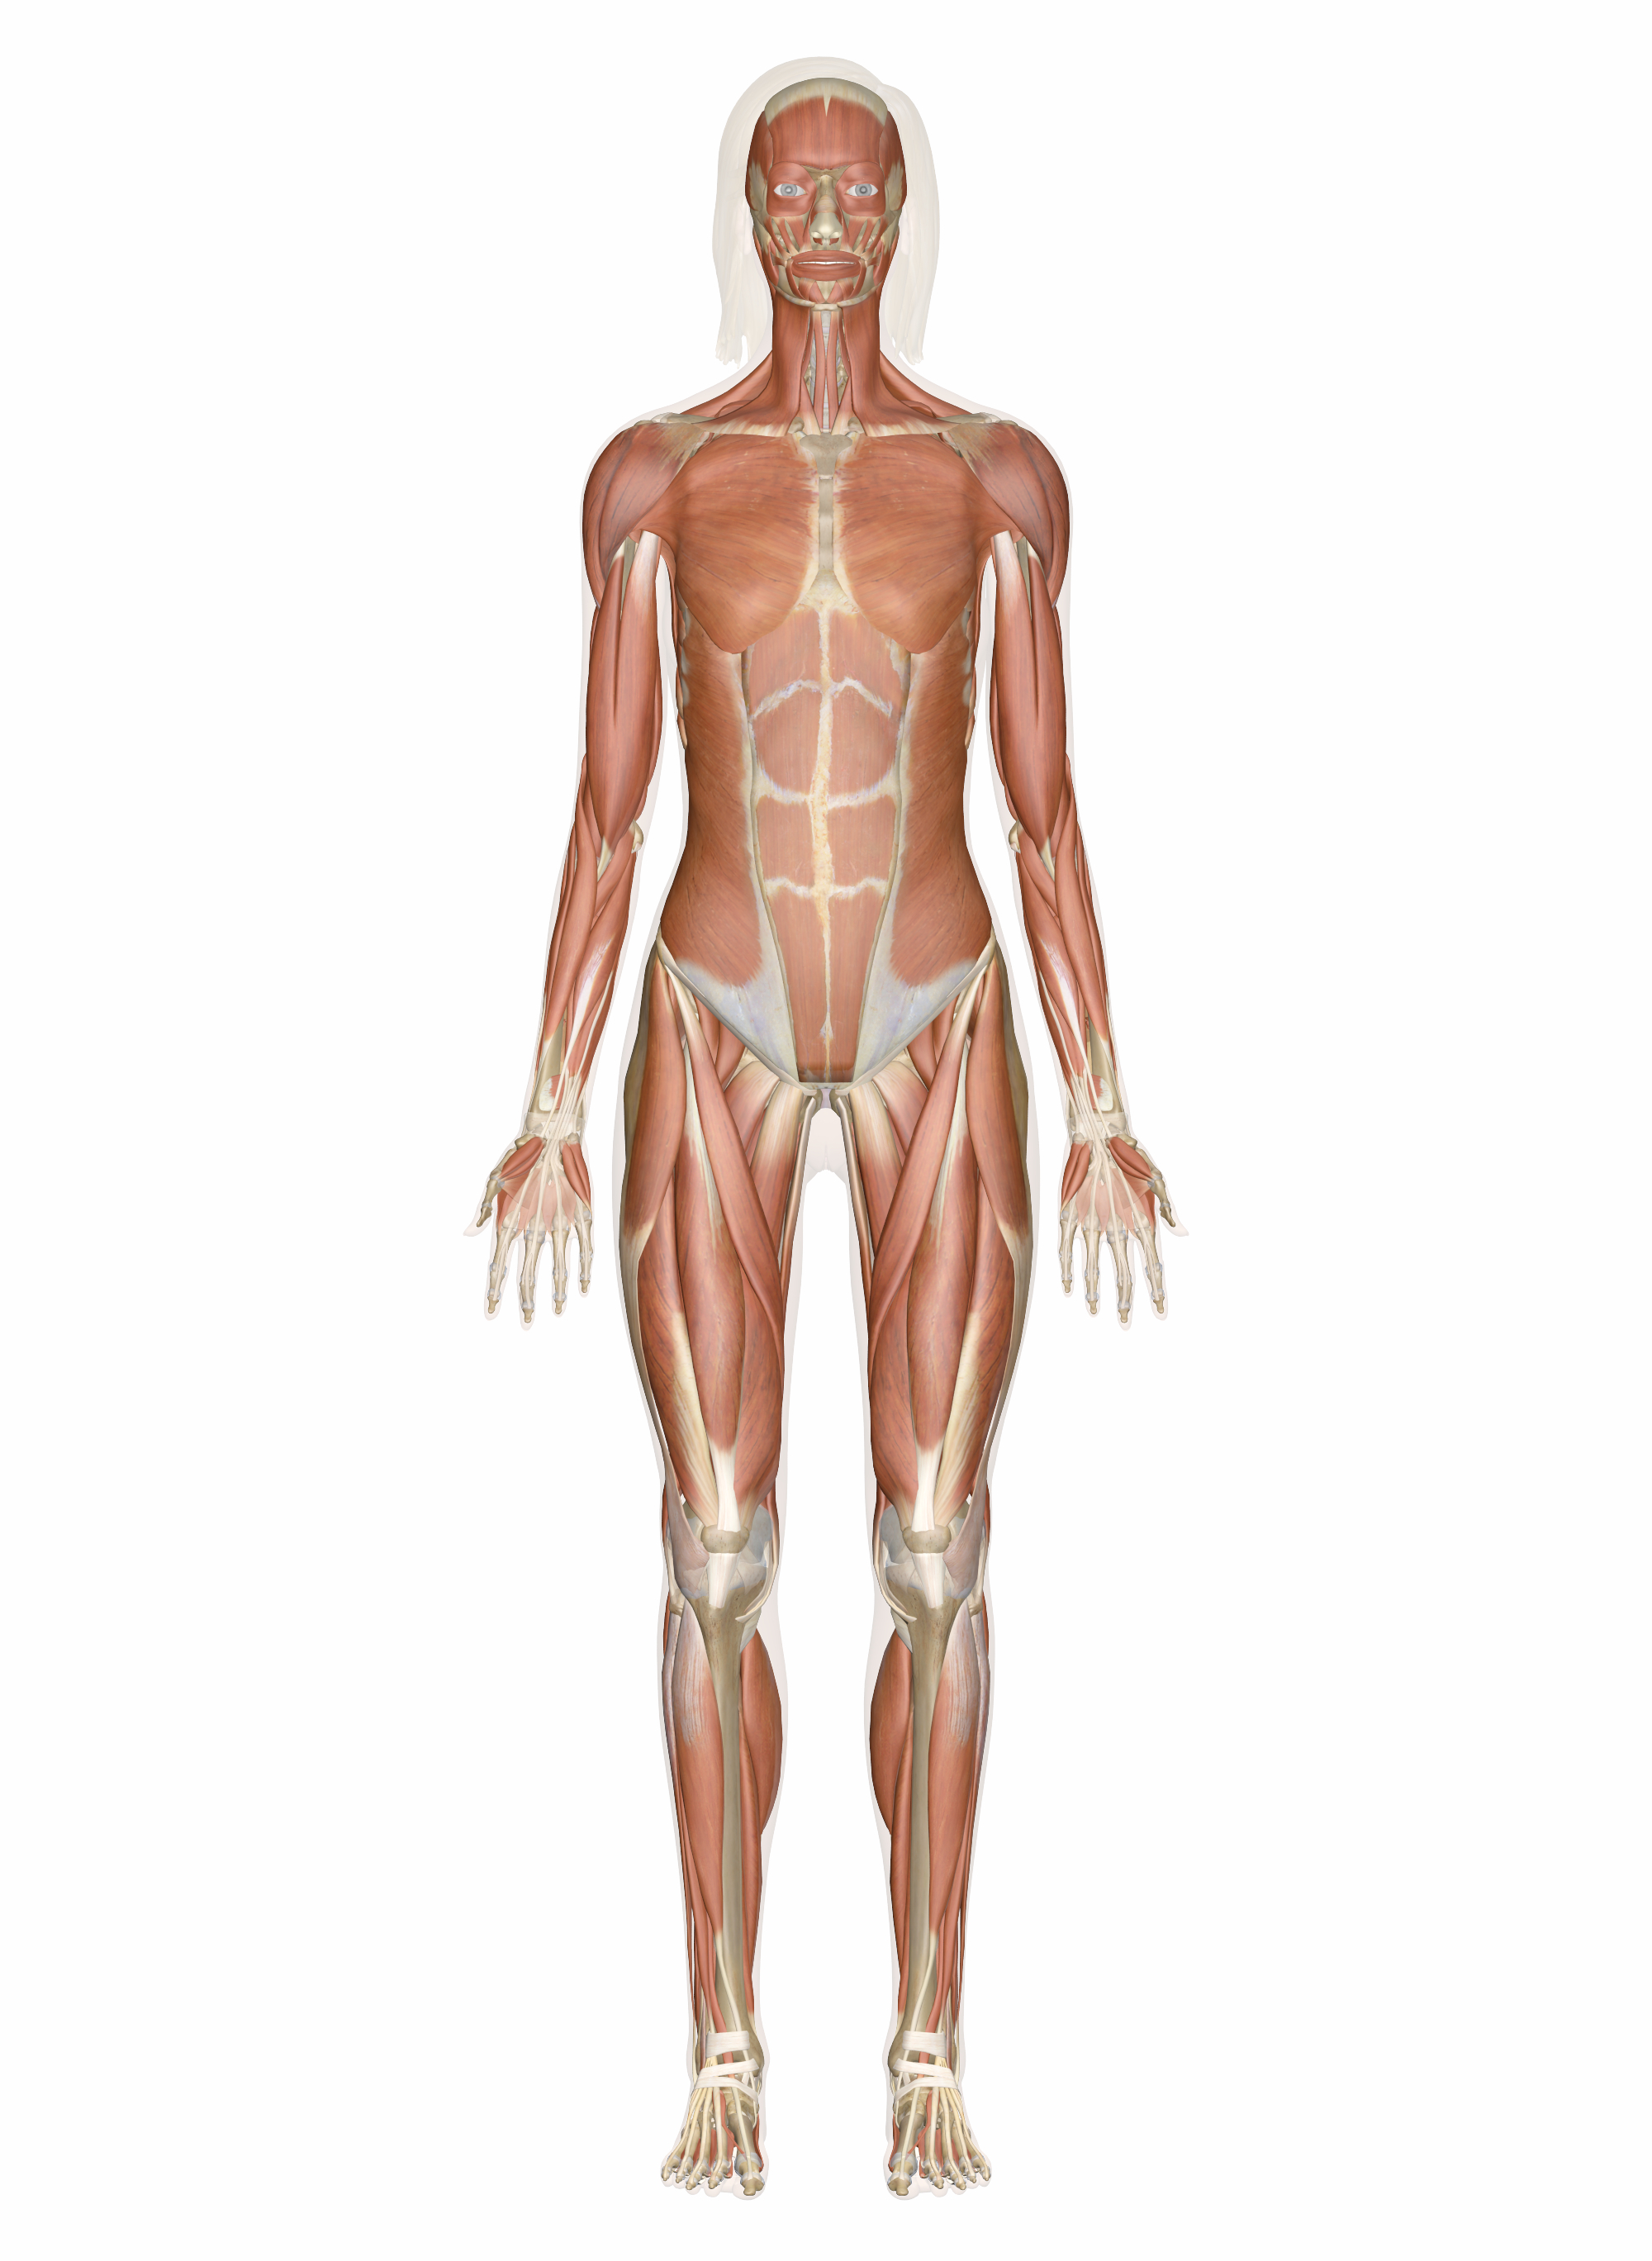 Human Muscle Diagram Muscular System Muscles Of The Human Body